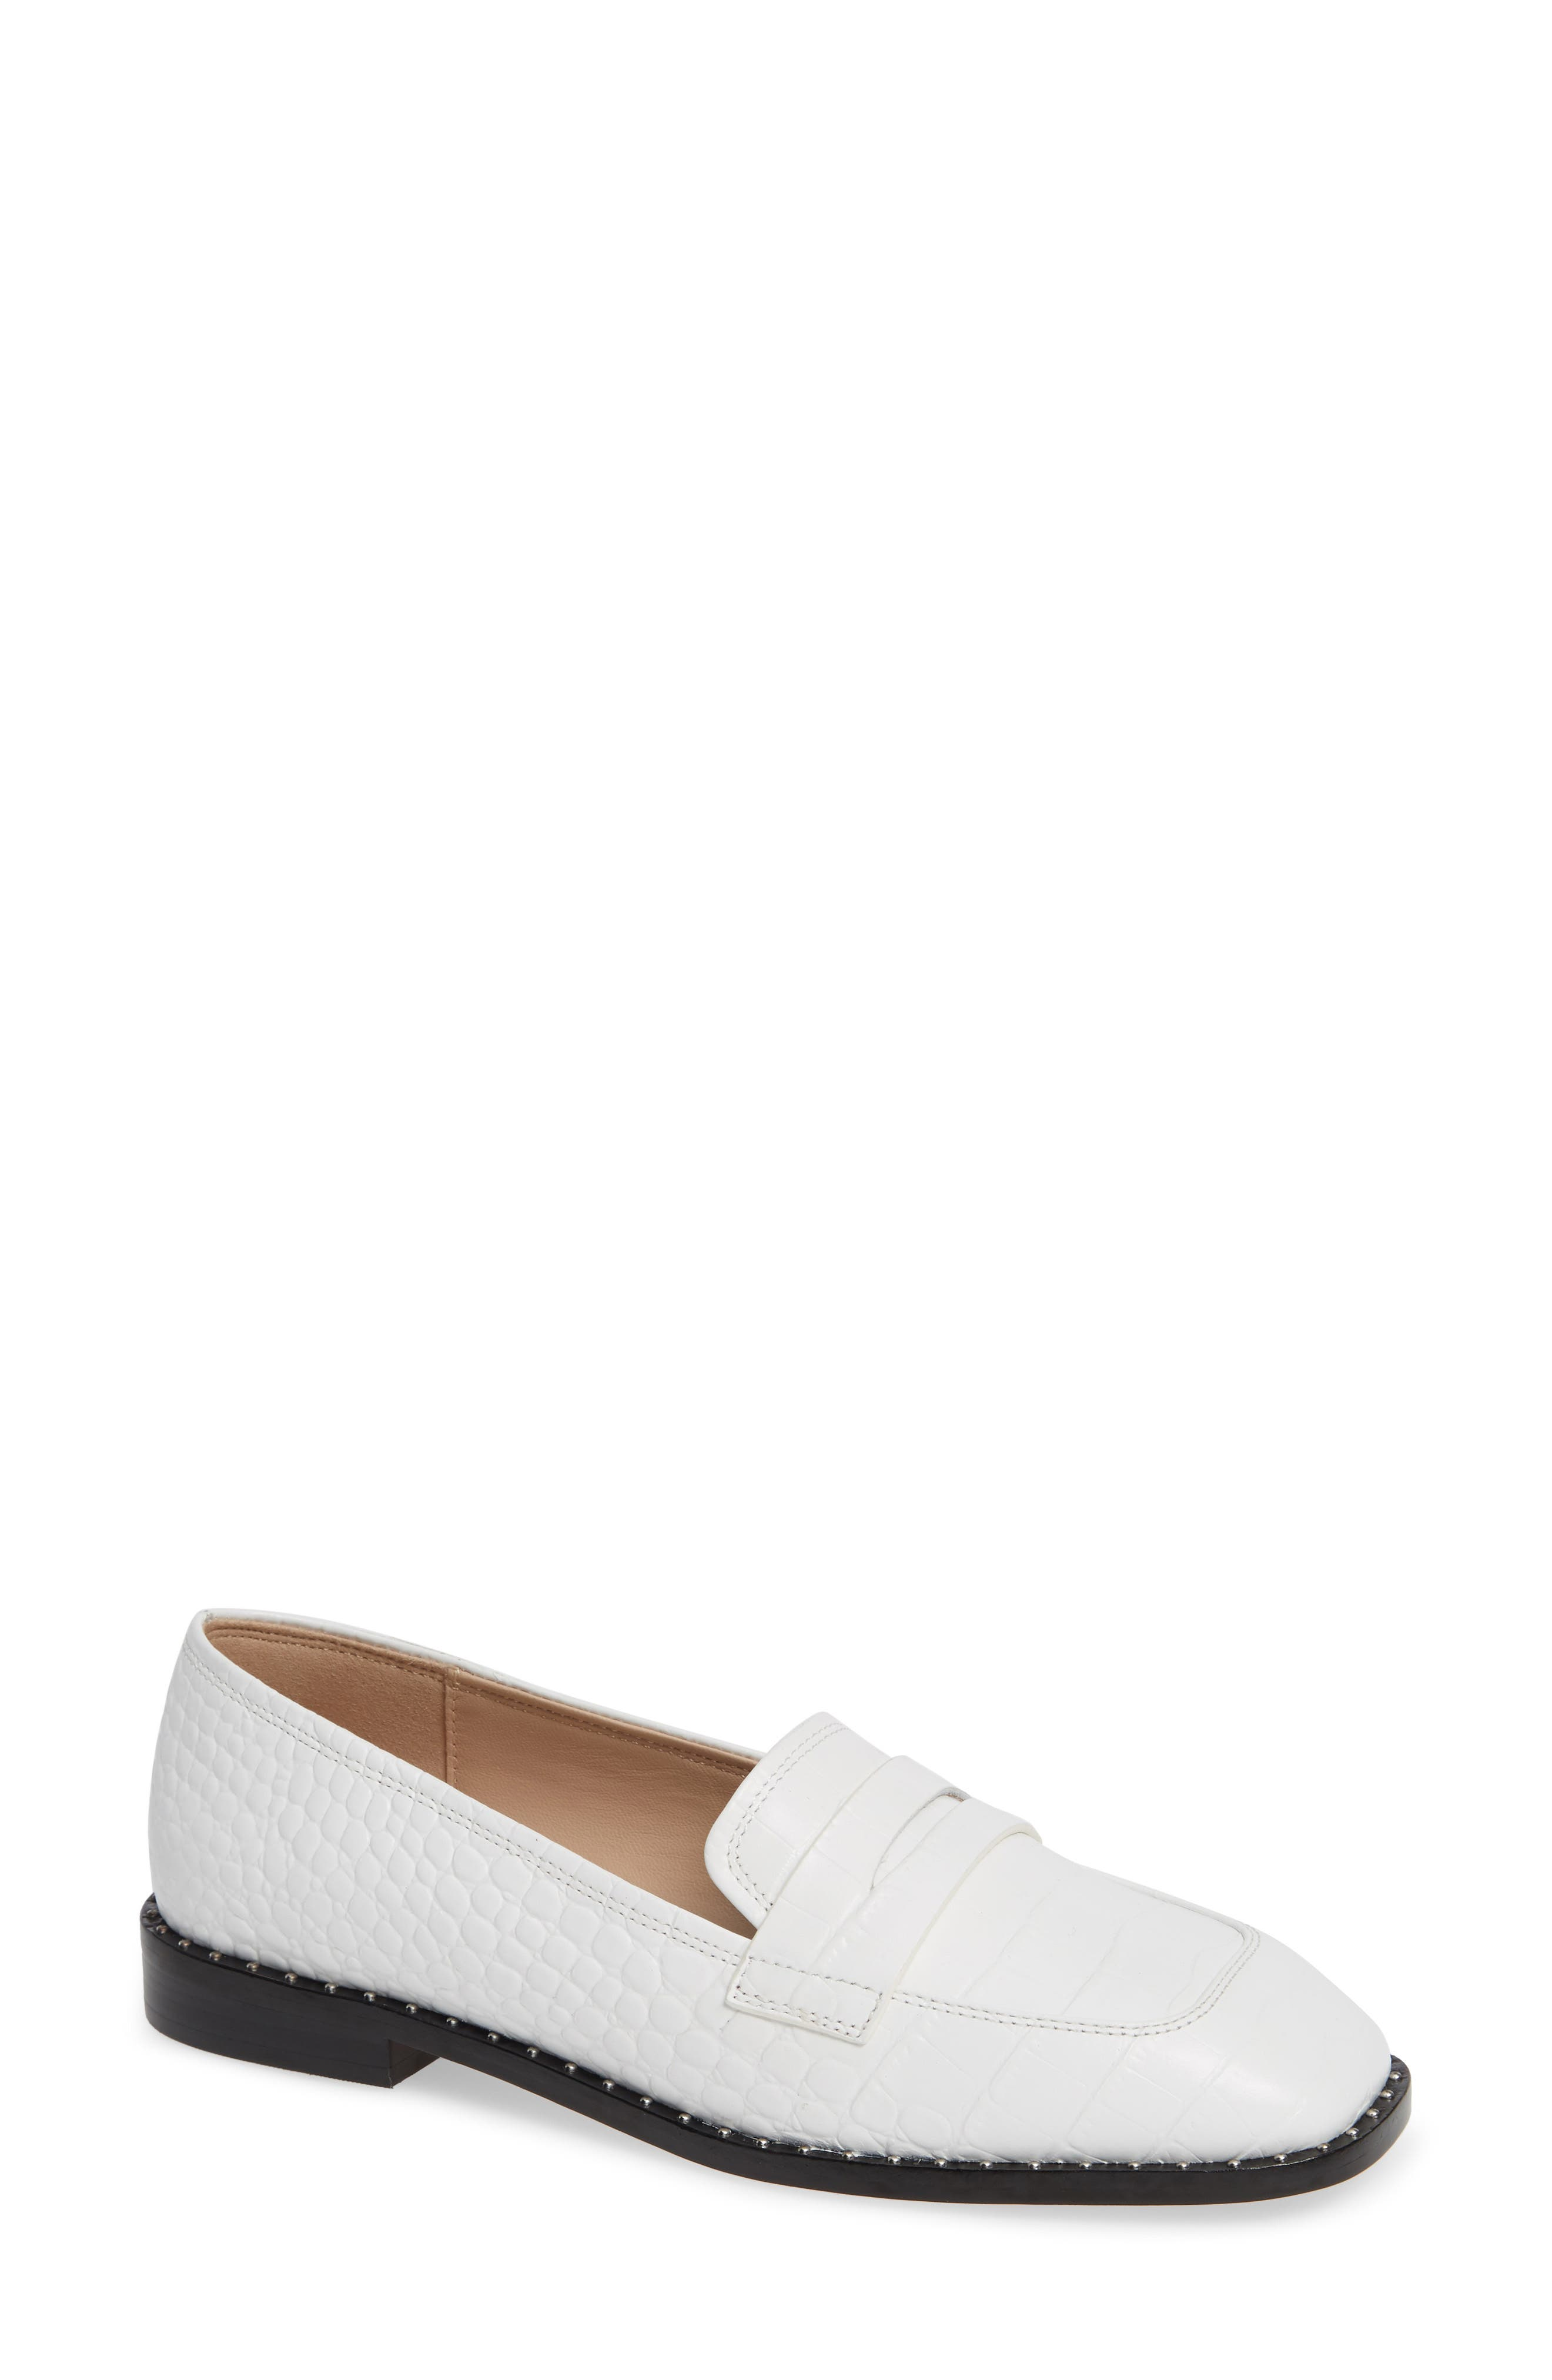 Amado Loafer,                         Main,                         color, WHITE EMBOSSED CROCO LEATHER